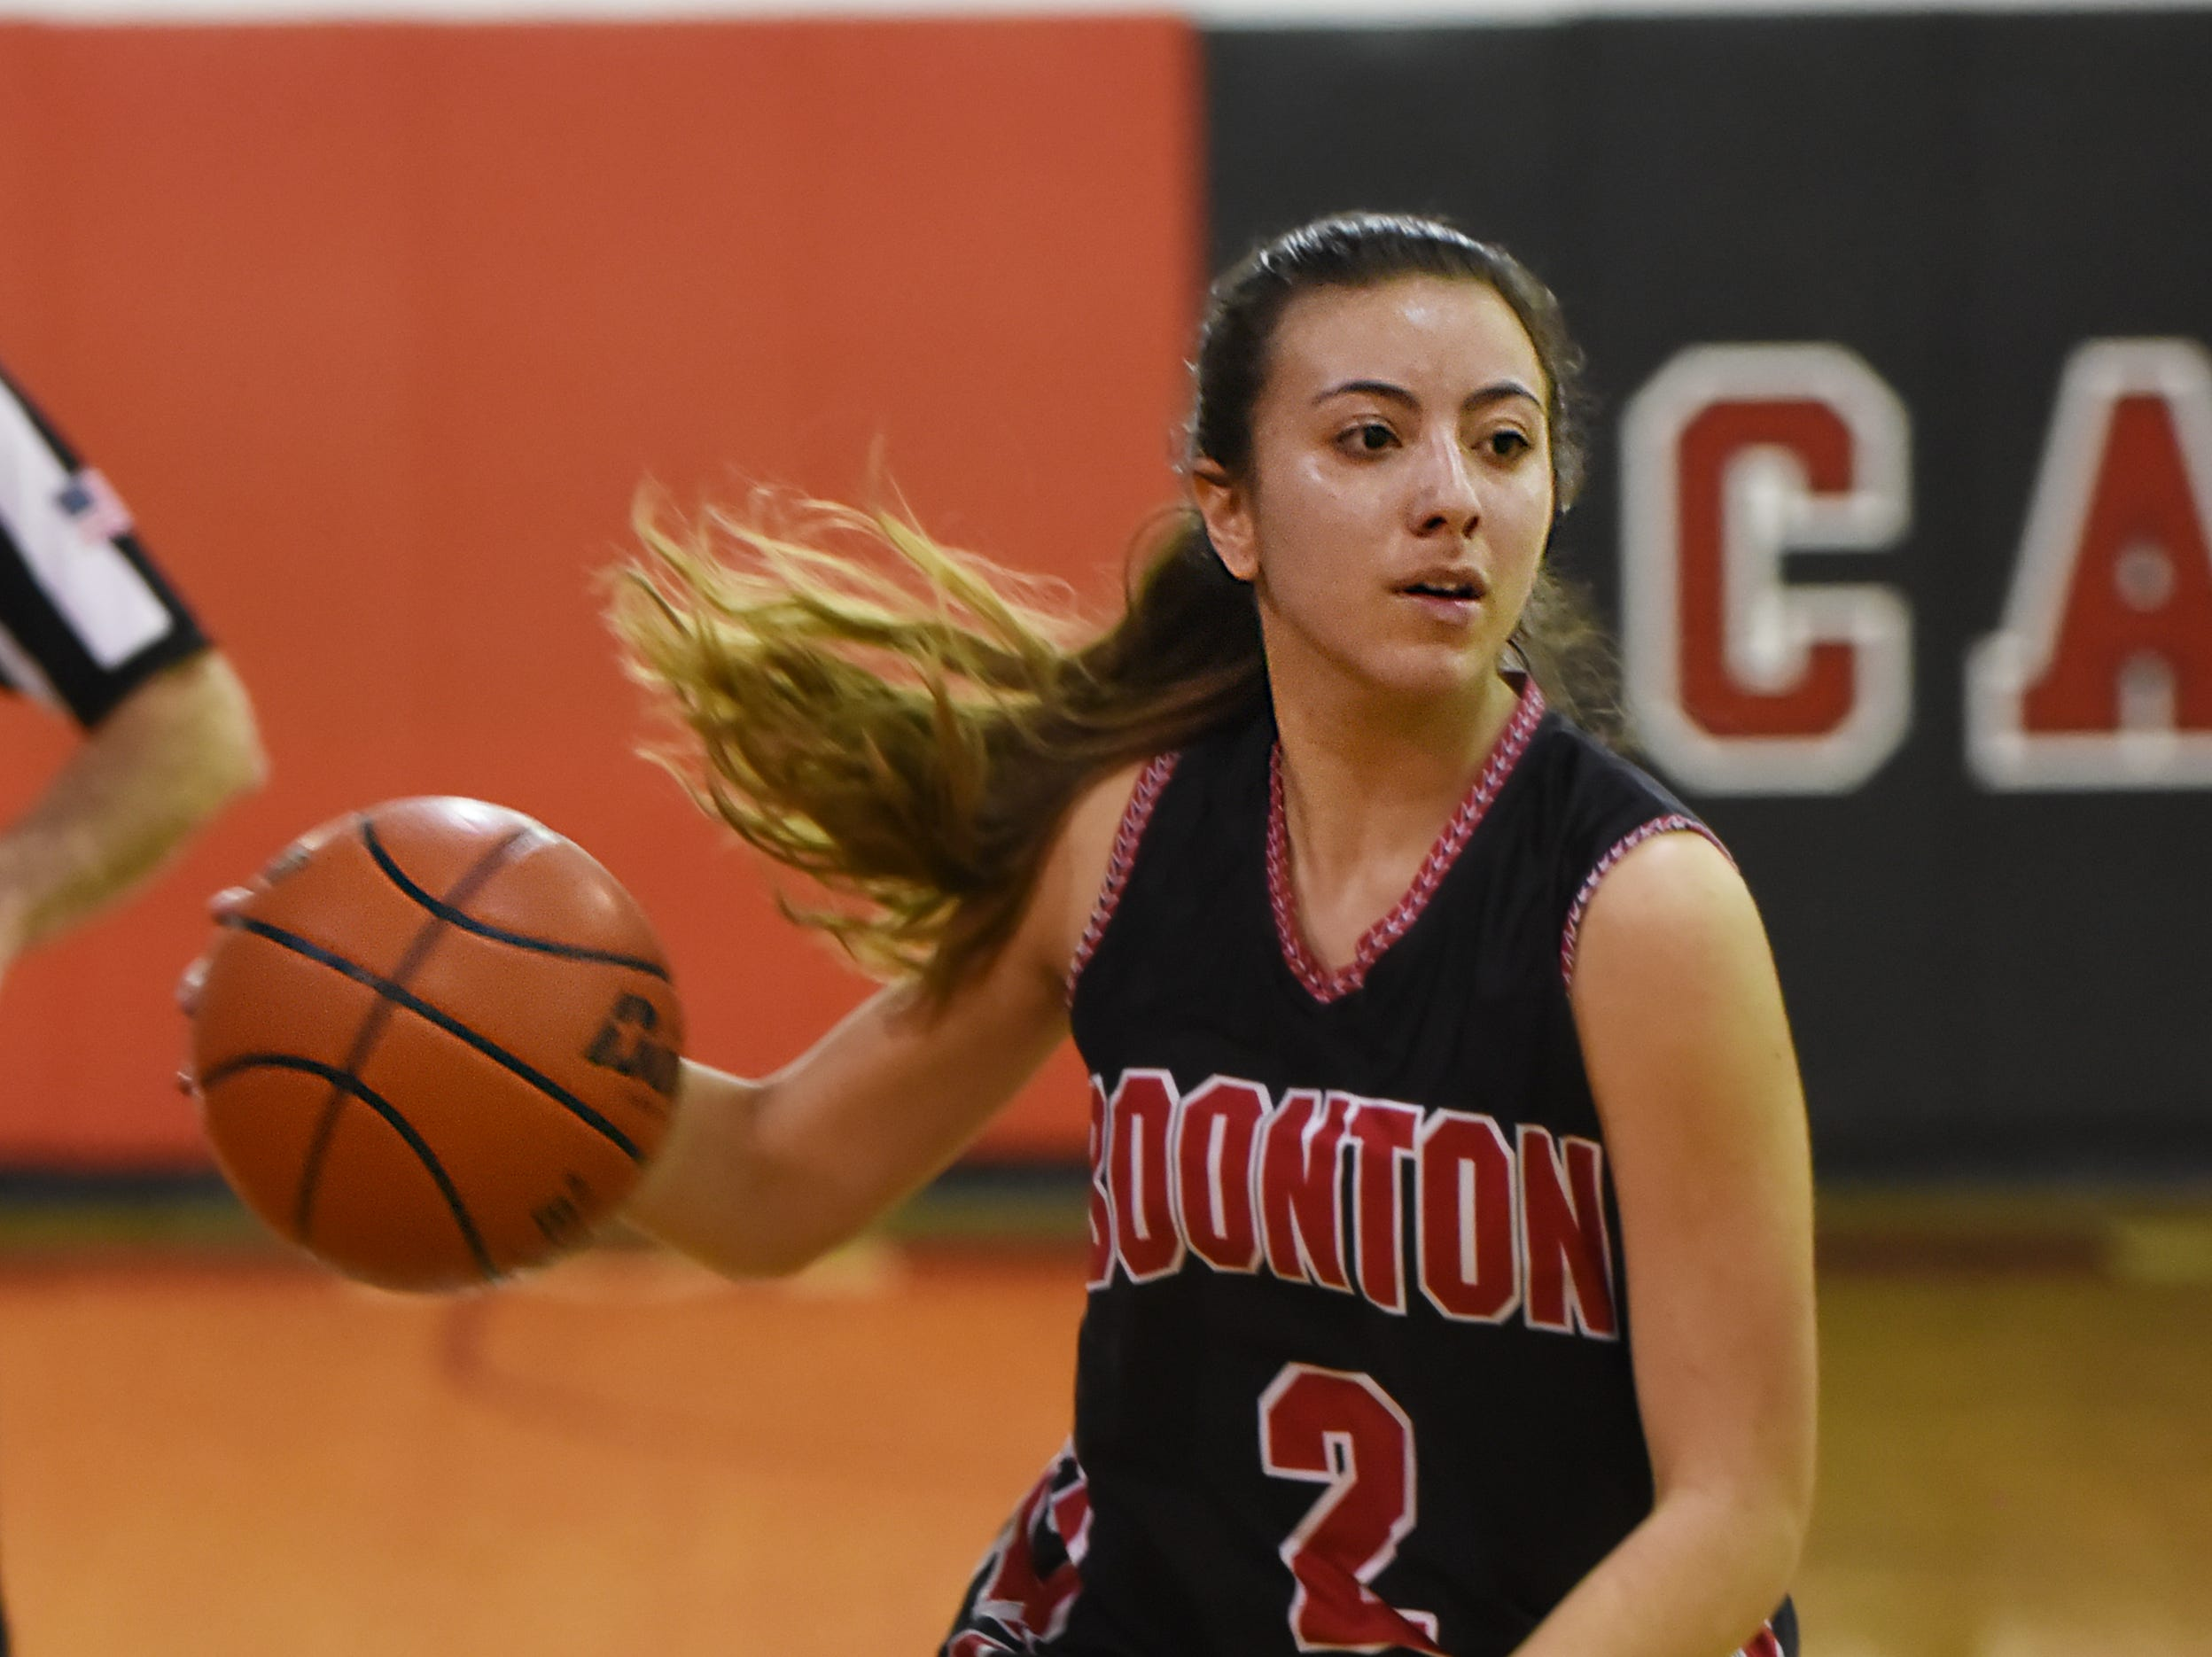 Boonton Vs. Morris Hills girls basketball game at the Morris Hills Holiday Tournament in Rockaway on Friday December 28, 2018. B#2 Sara Rios with the ball.